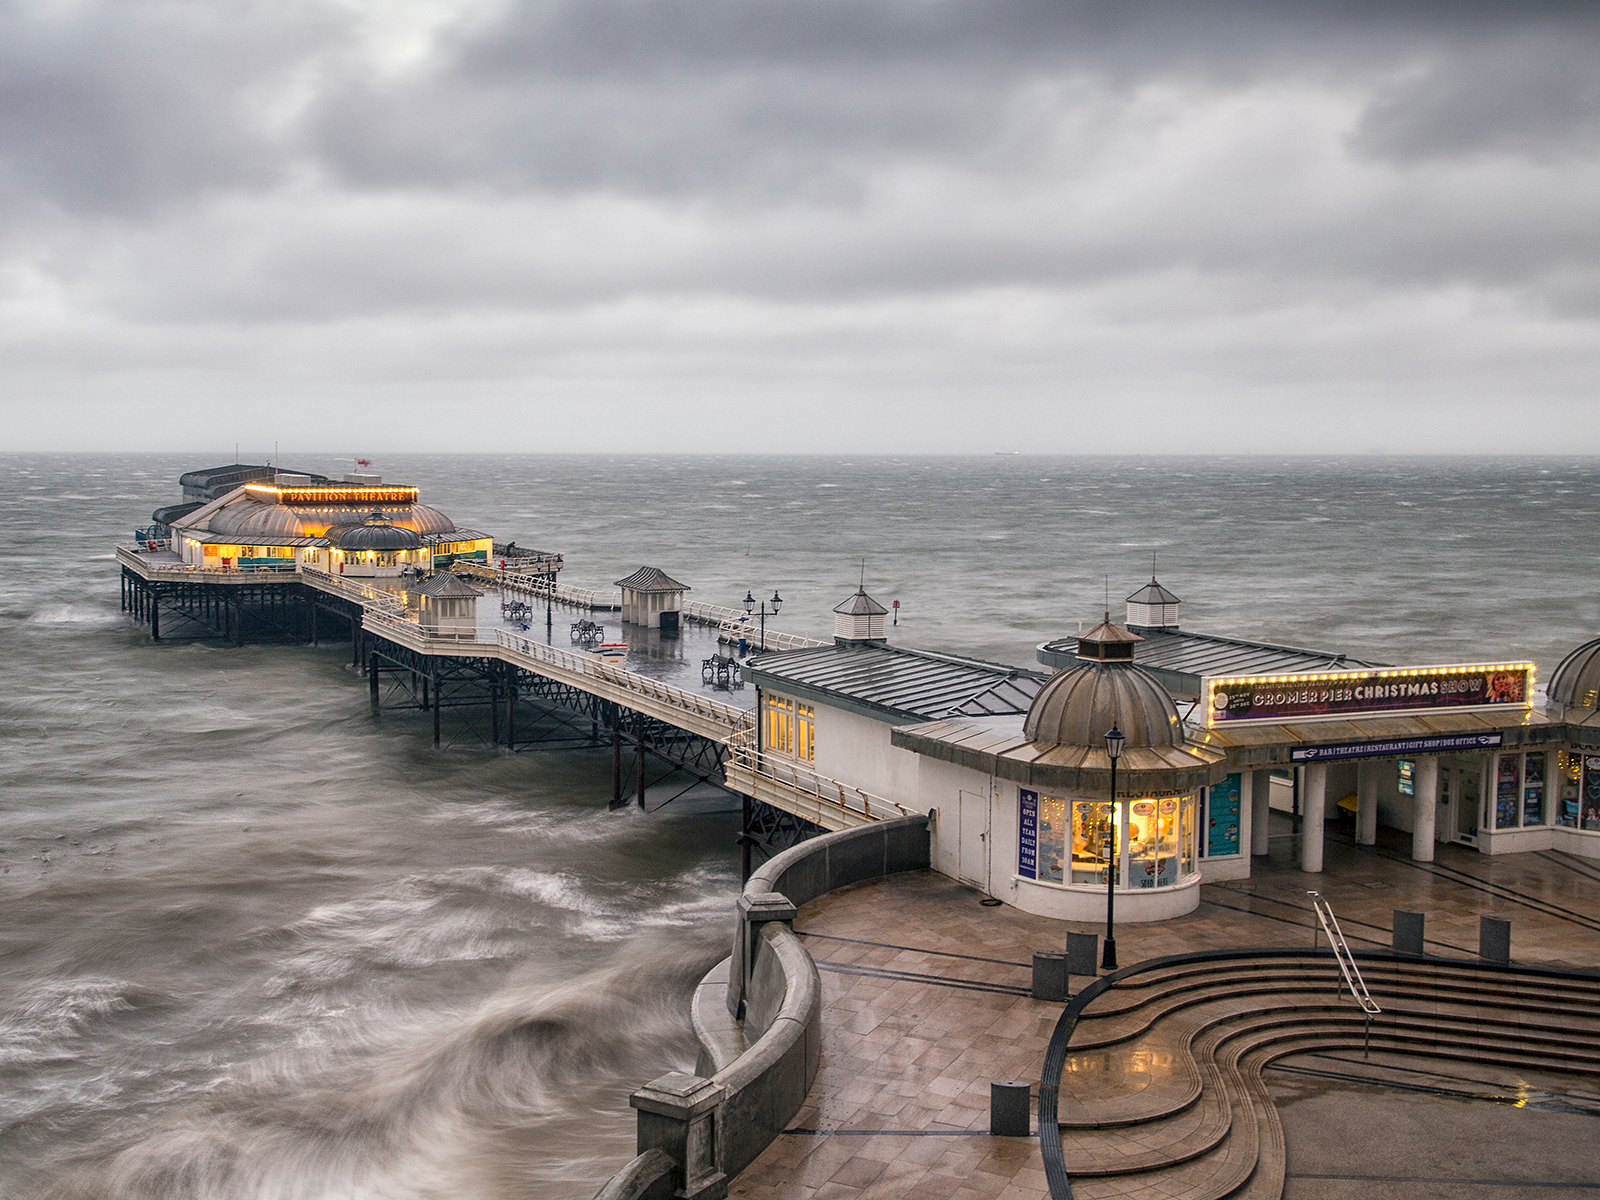 'Cromer Pier' by Tony Oliver